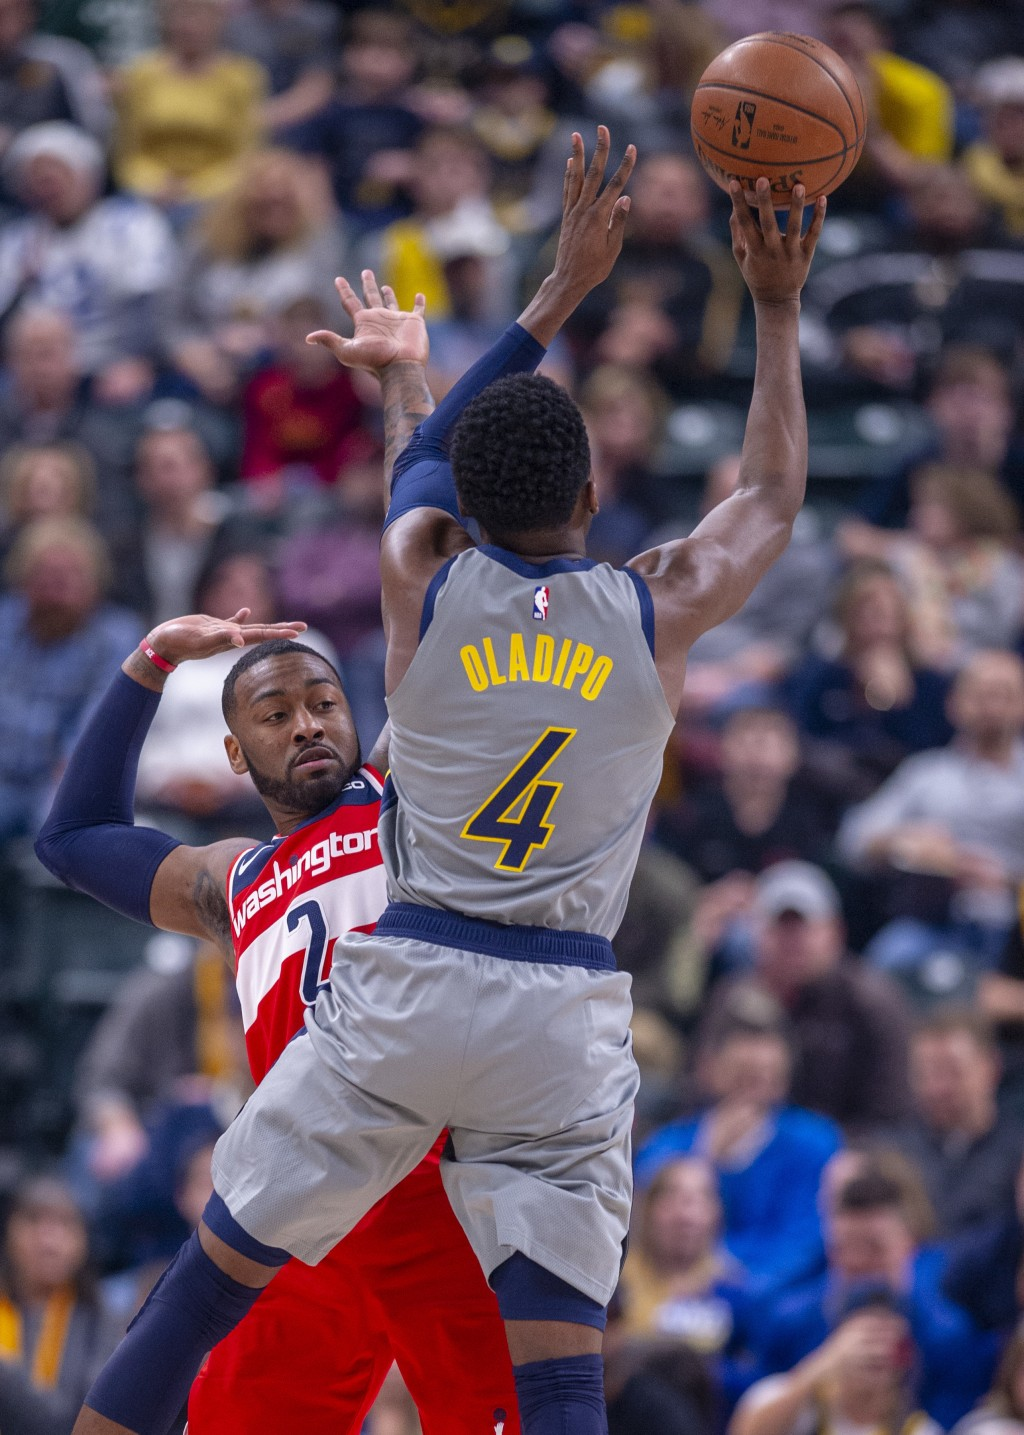 Indiana Pacers guard Victor Oladipo (4) collides with Washington Wizards guard John Wall (2) as he shoots during an NBA basketball game, Sunday, Dec.